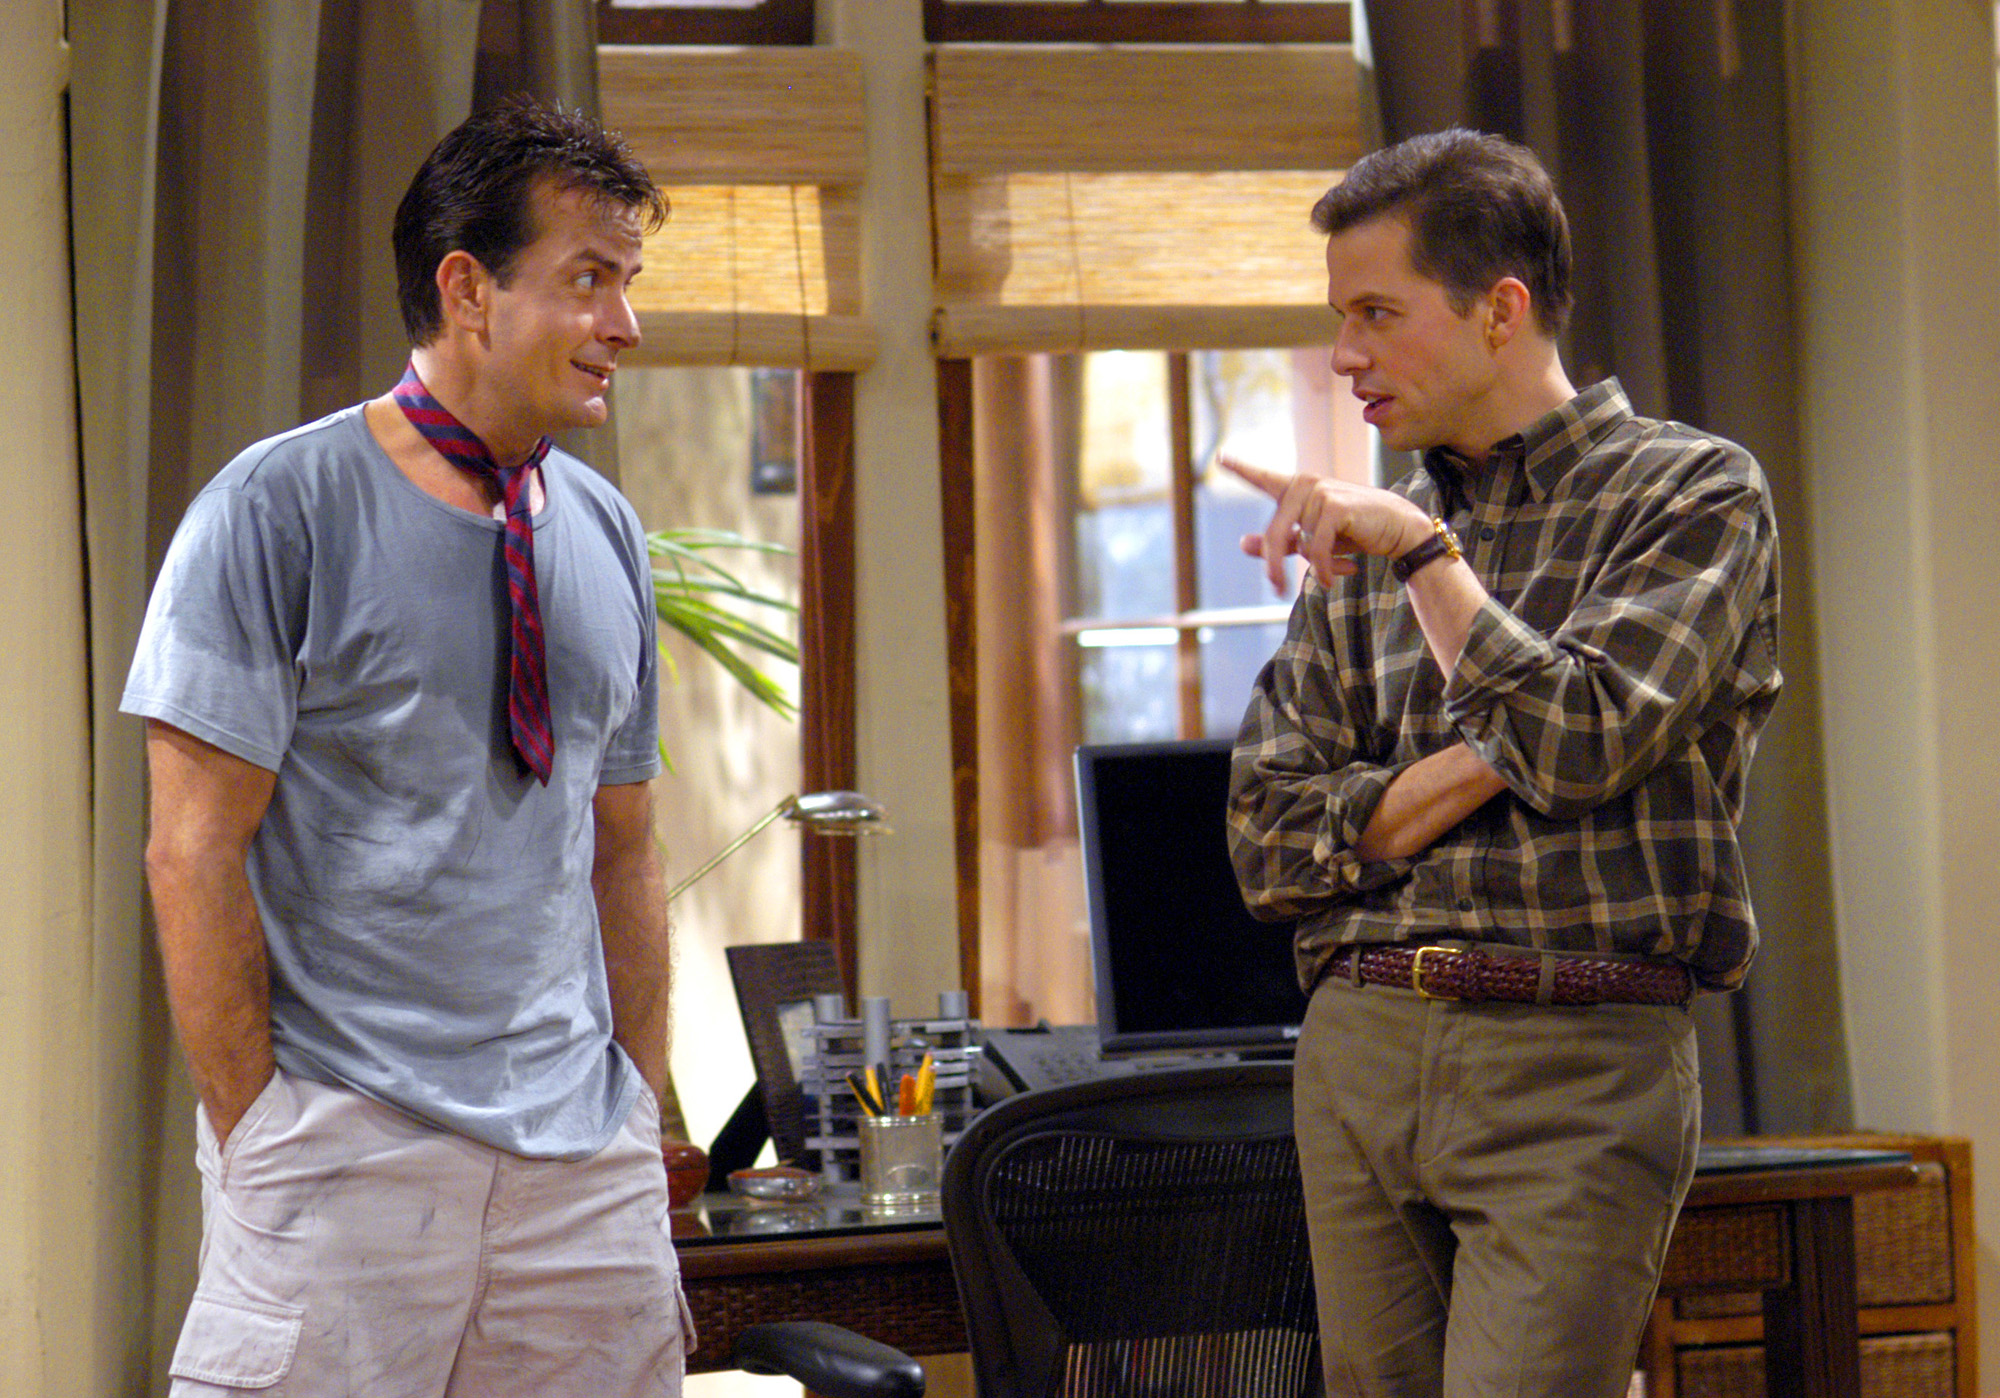 Charlie Harper (Charlie Sheen, left) and Alan Harper (Jon Cryer, right) argue over how to raise Alan's son, Jake on Two and a Half Men